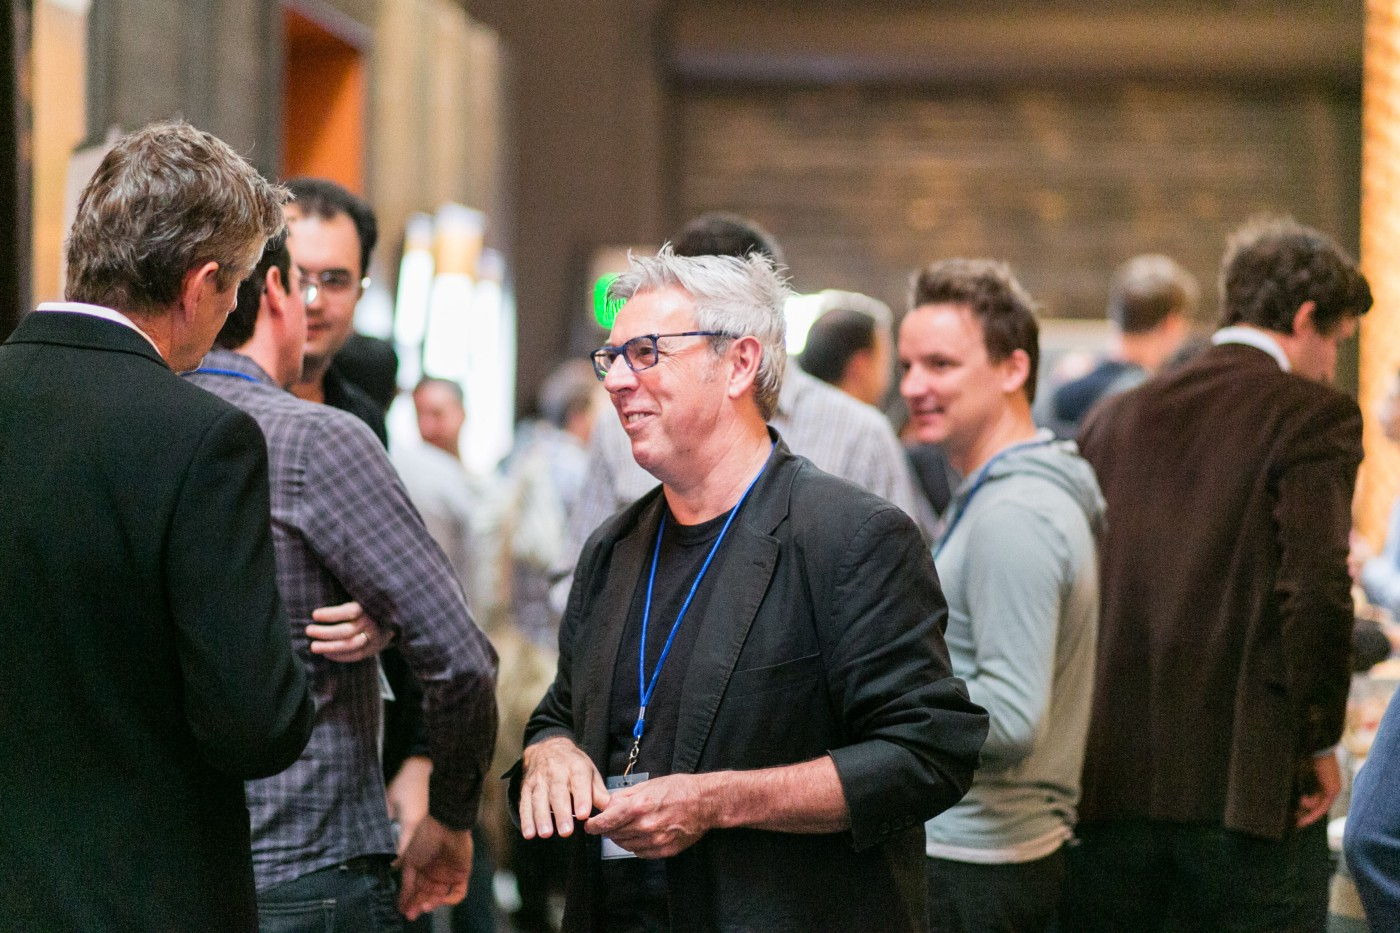 Roberto Pieraccini chatting with attendees